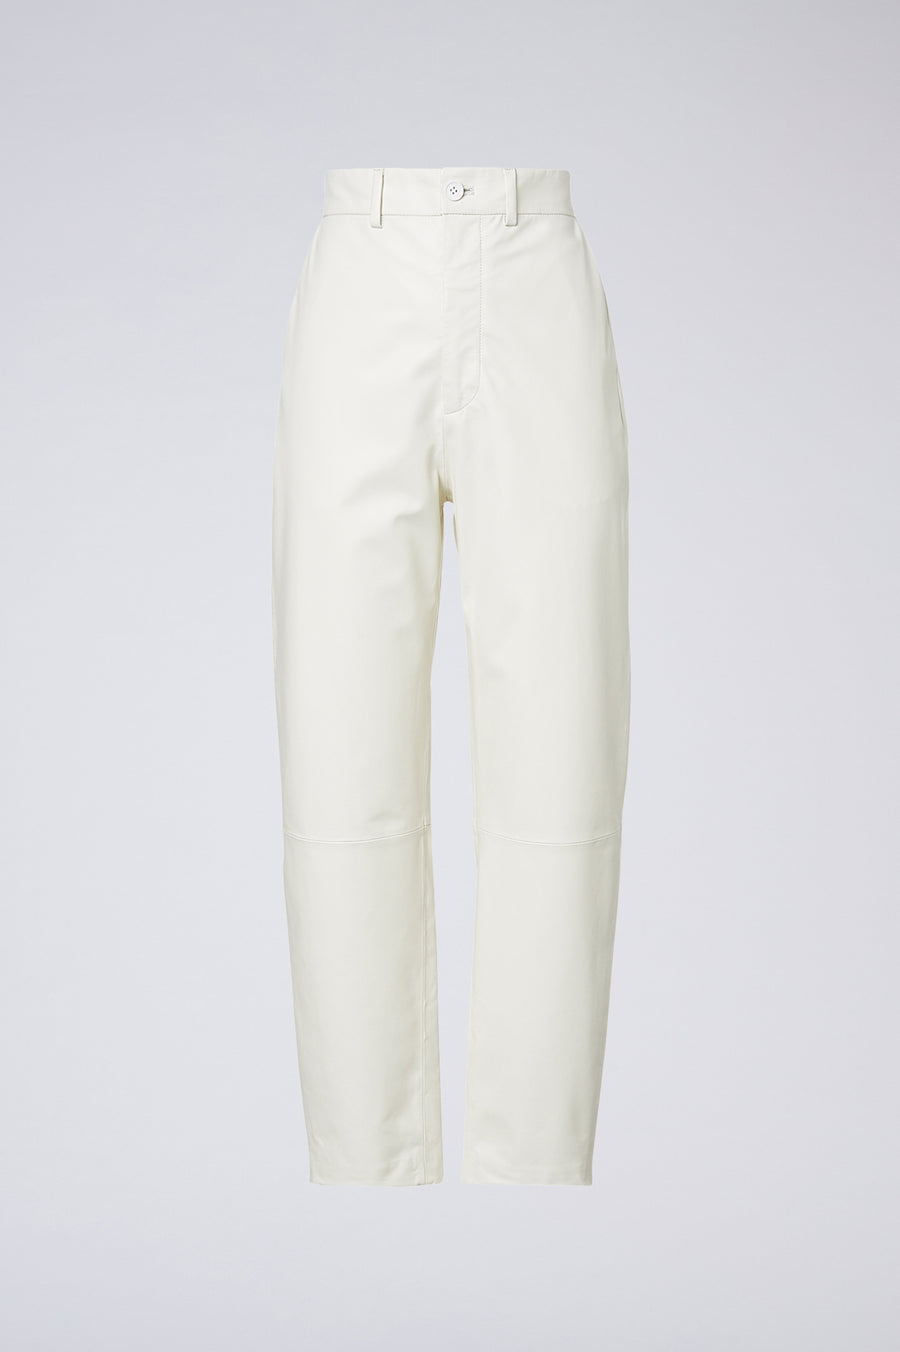 Crafted from a luxuriously soft leather, the Leather High Waist Trouser are a versatile and luxe staple